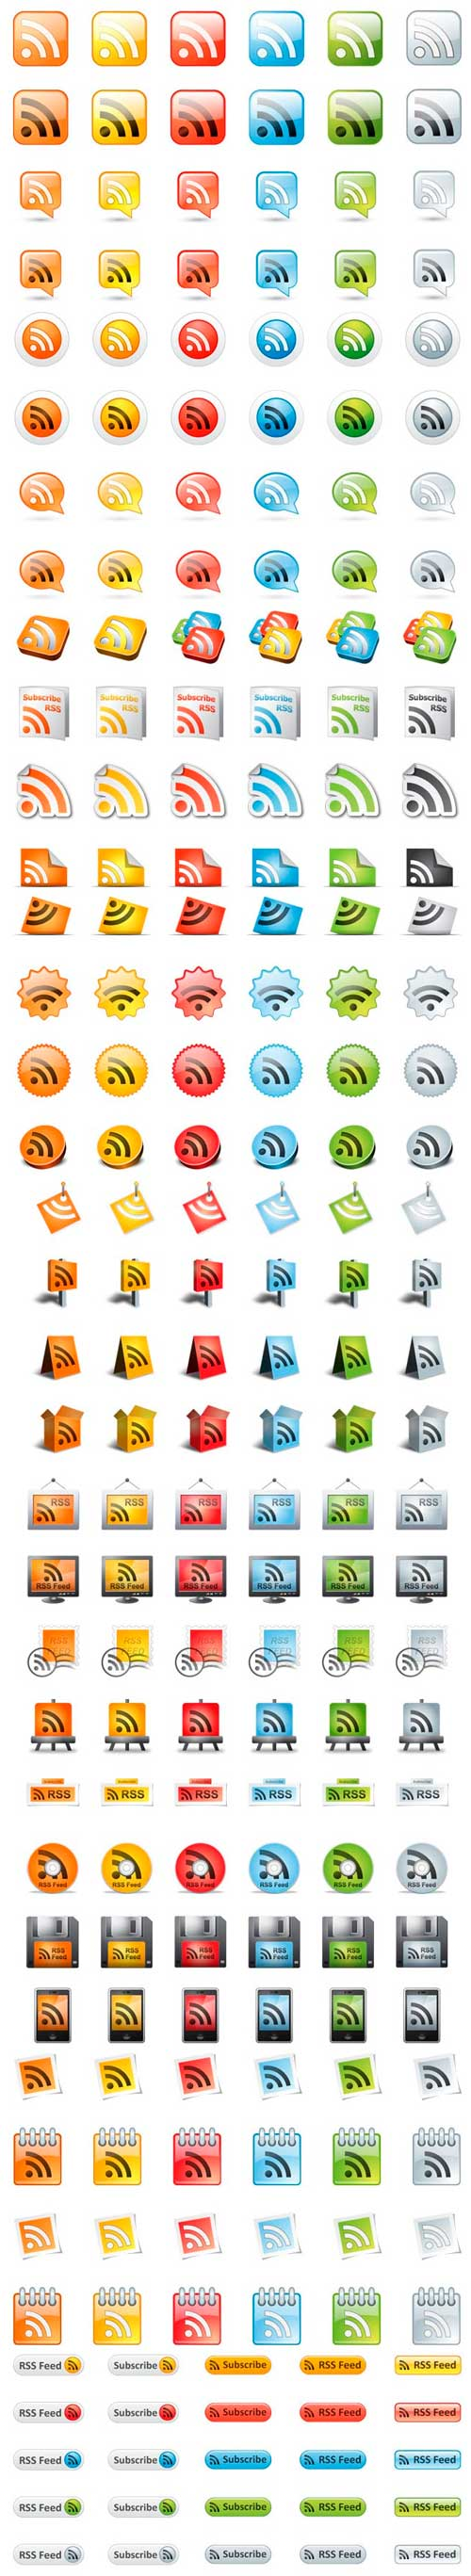 Supra rss icons